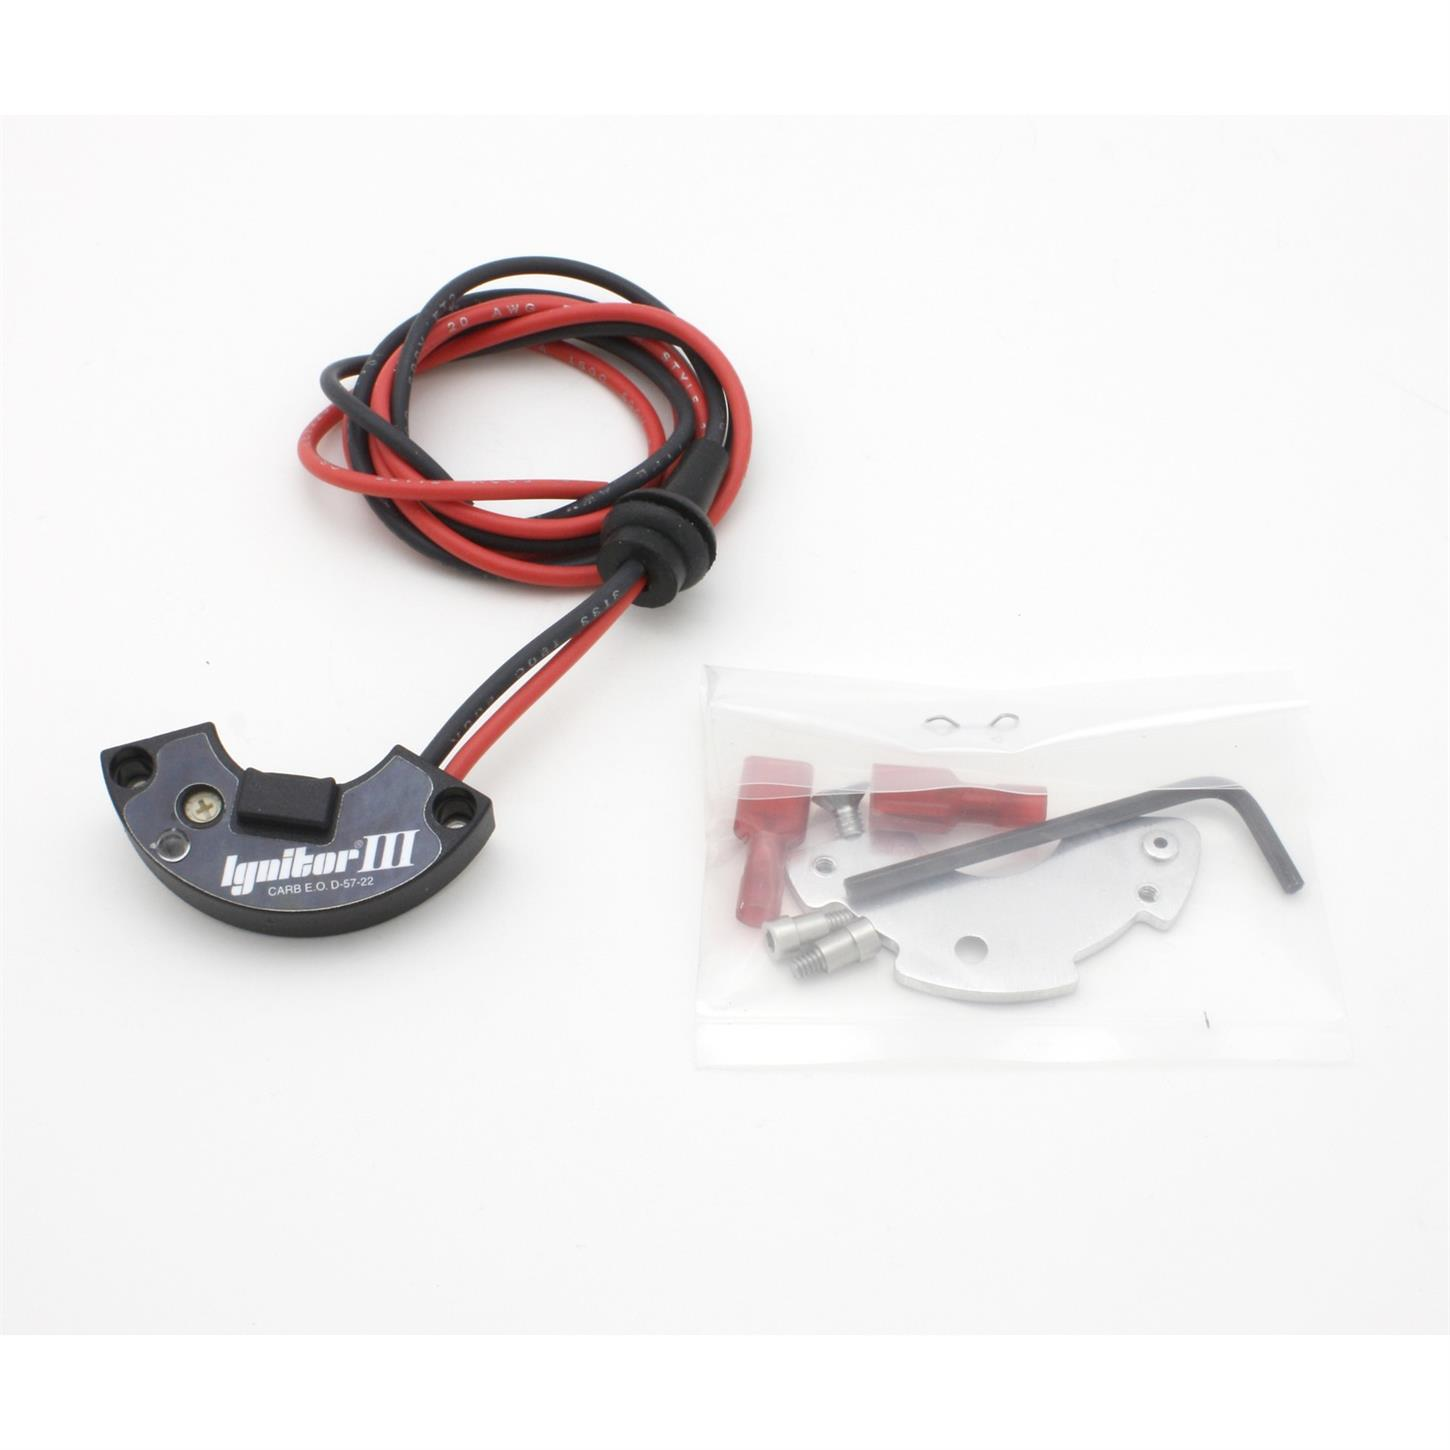 Pertronix 71847v Ignitor Iii Solid State Ignition System Bosch 4 Cyl Porsche 914 Wiring